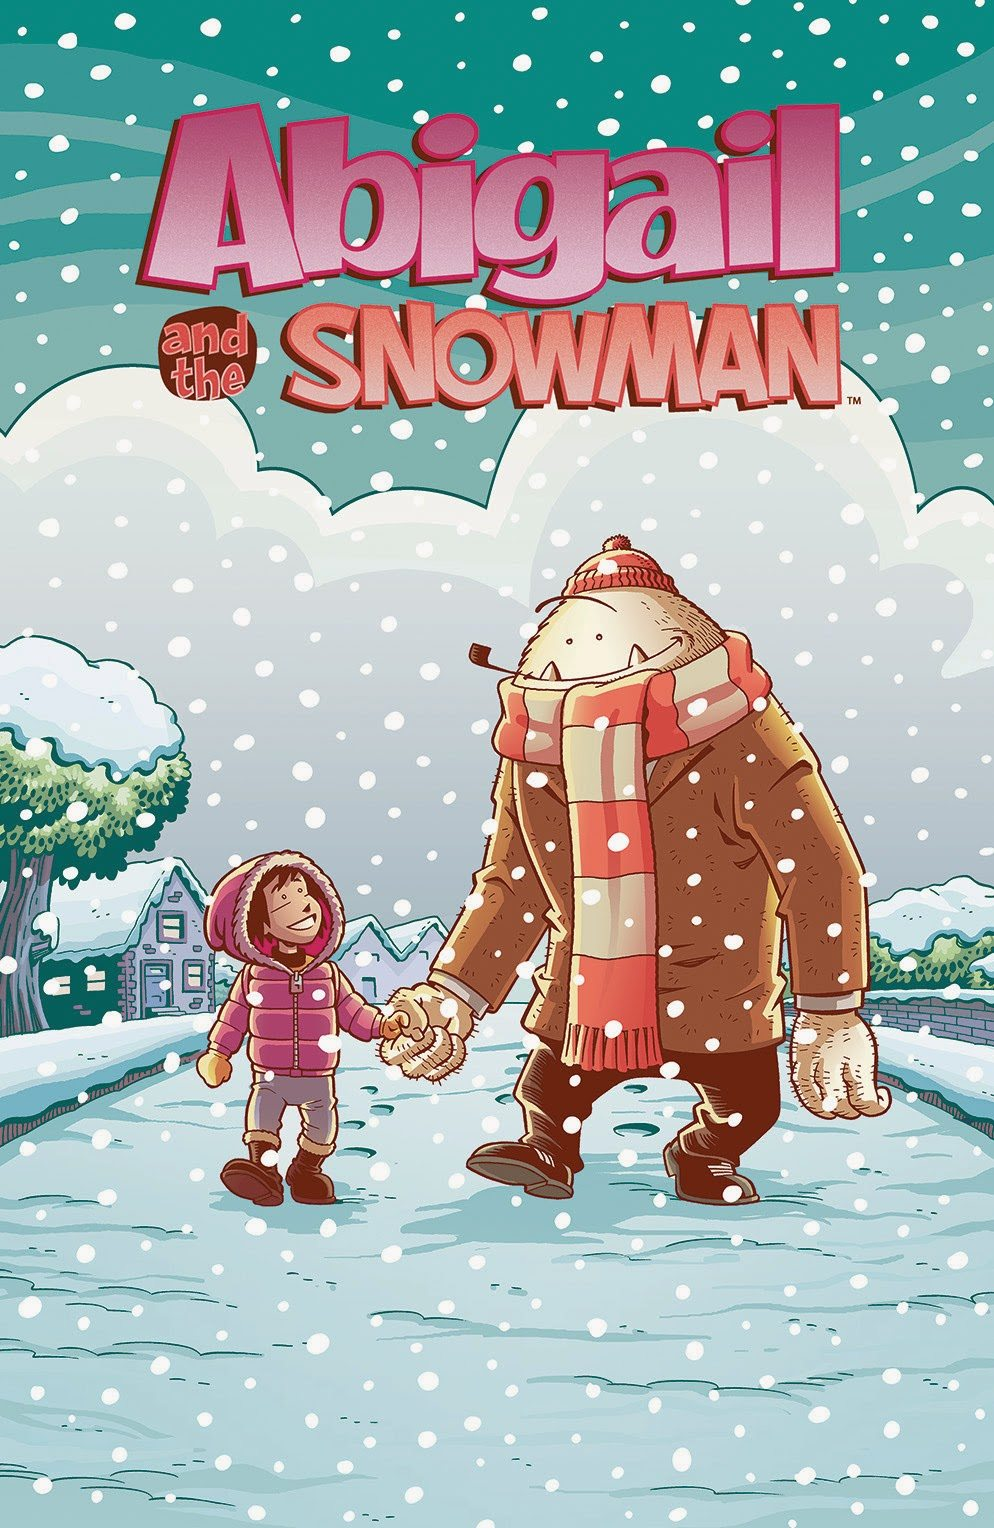 Abigail and the Snowman  Image Copyright Kaboom!